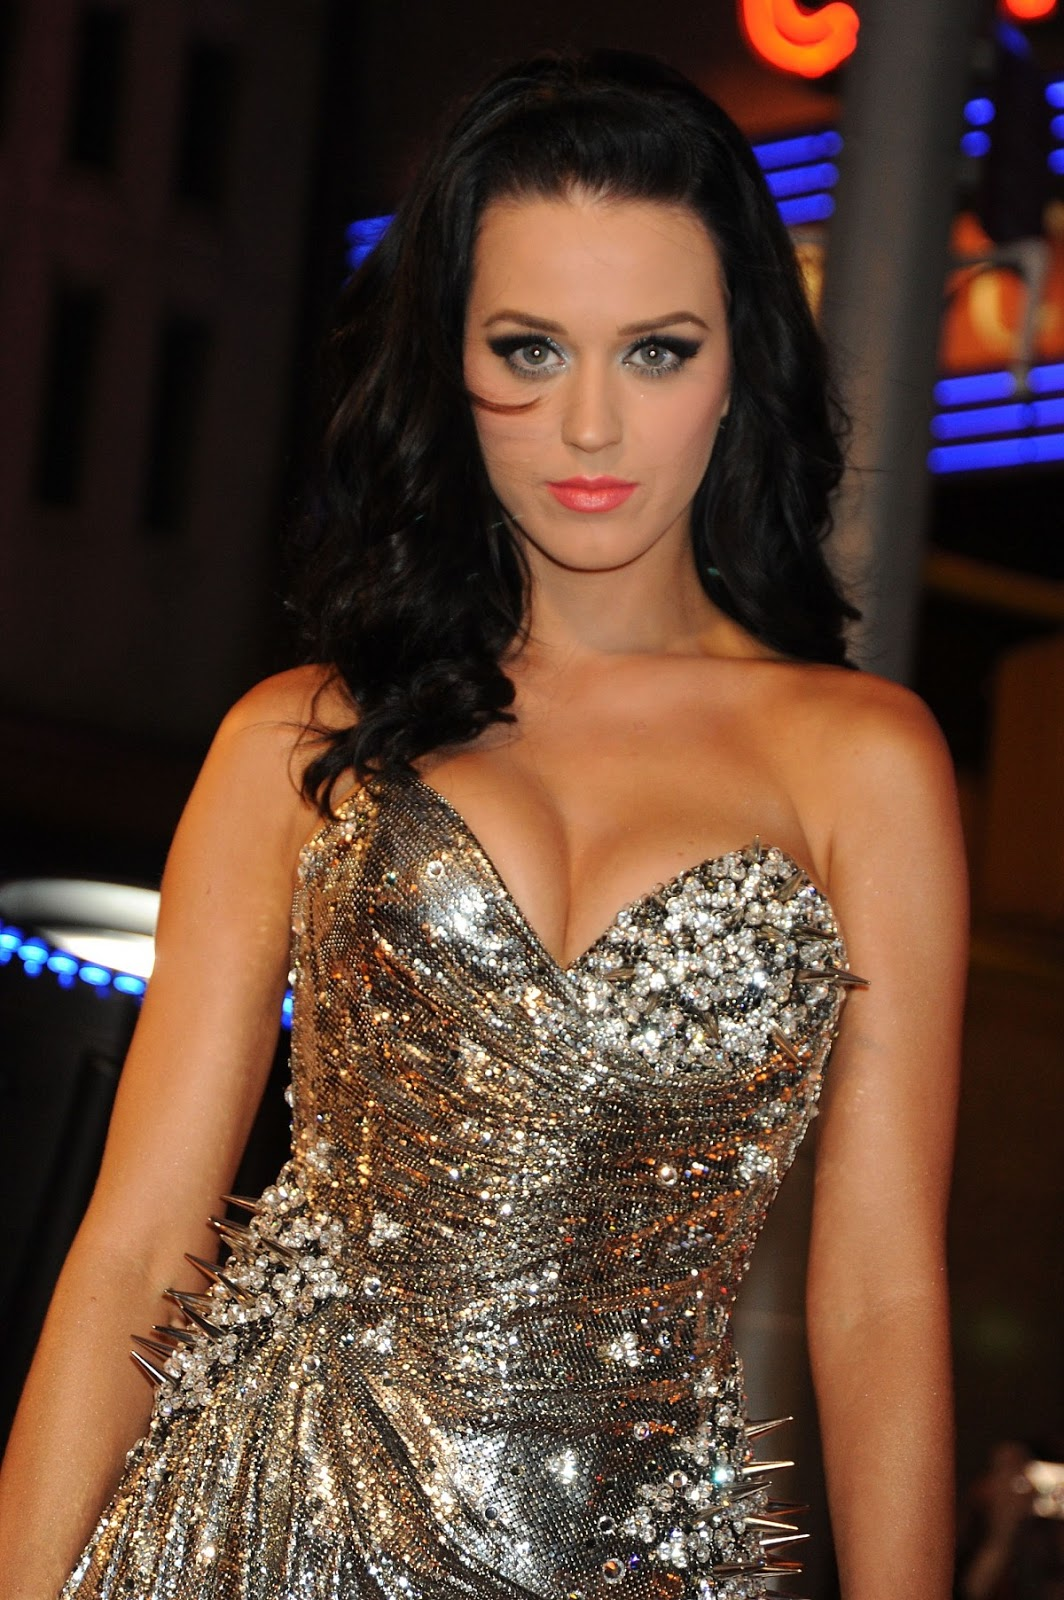 What was the exact date of when Katy Perry was born?